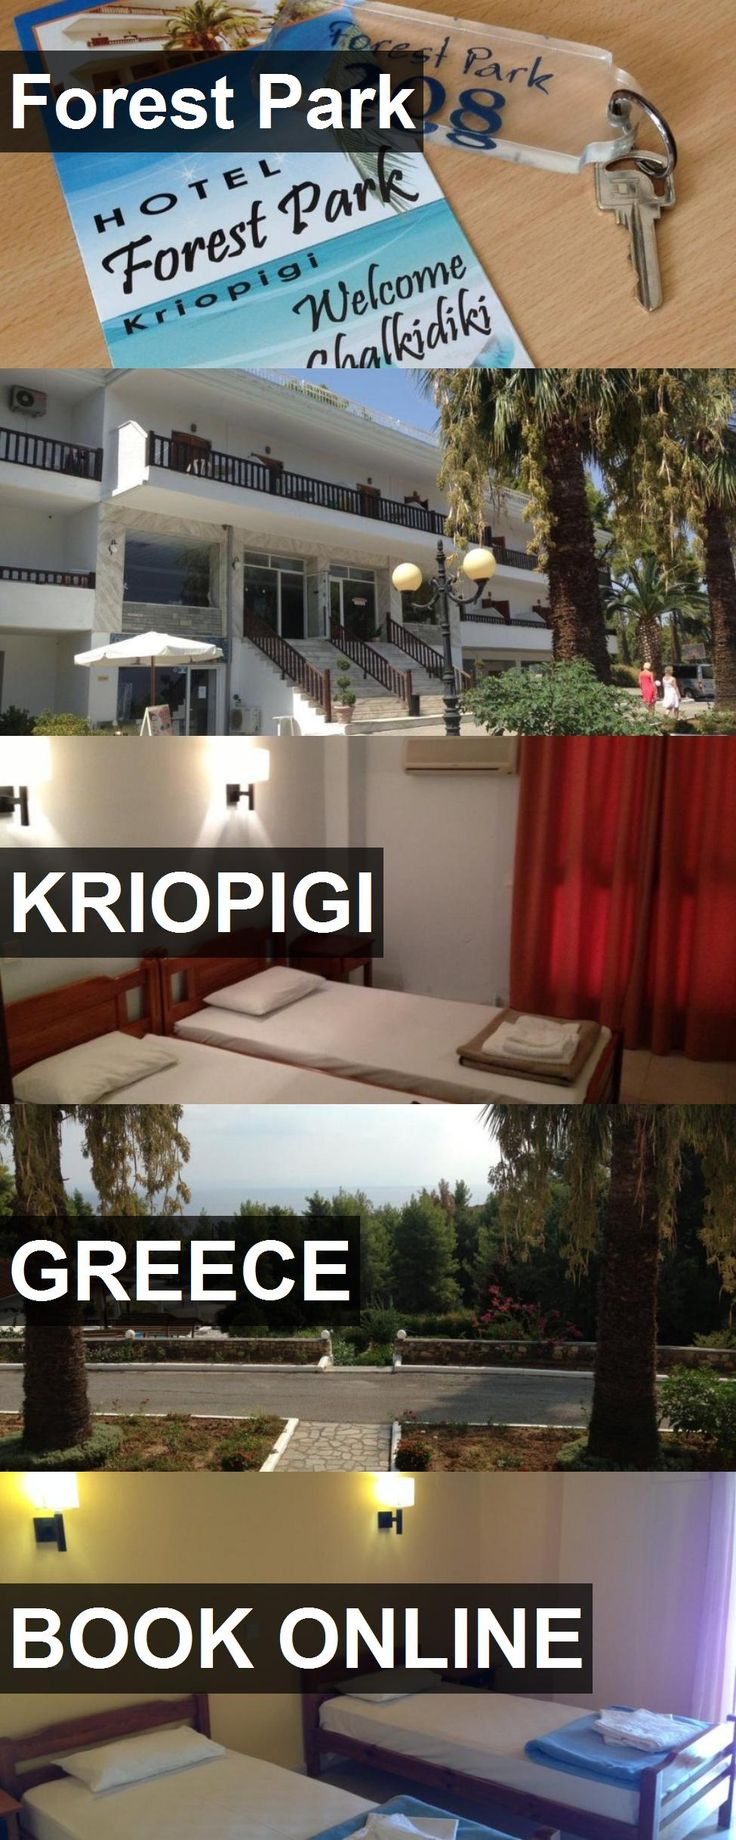 Hotel Forest Park in Kriopigi, Greece. For more information, photos, reviews and best prices please follow the link. #Greece #Kriopigi #travel #vacation #hotel